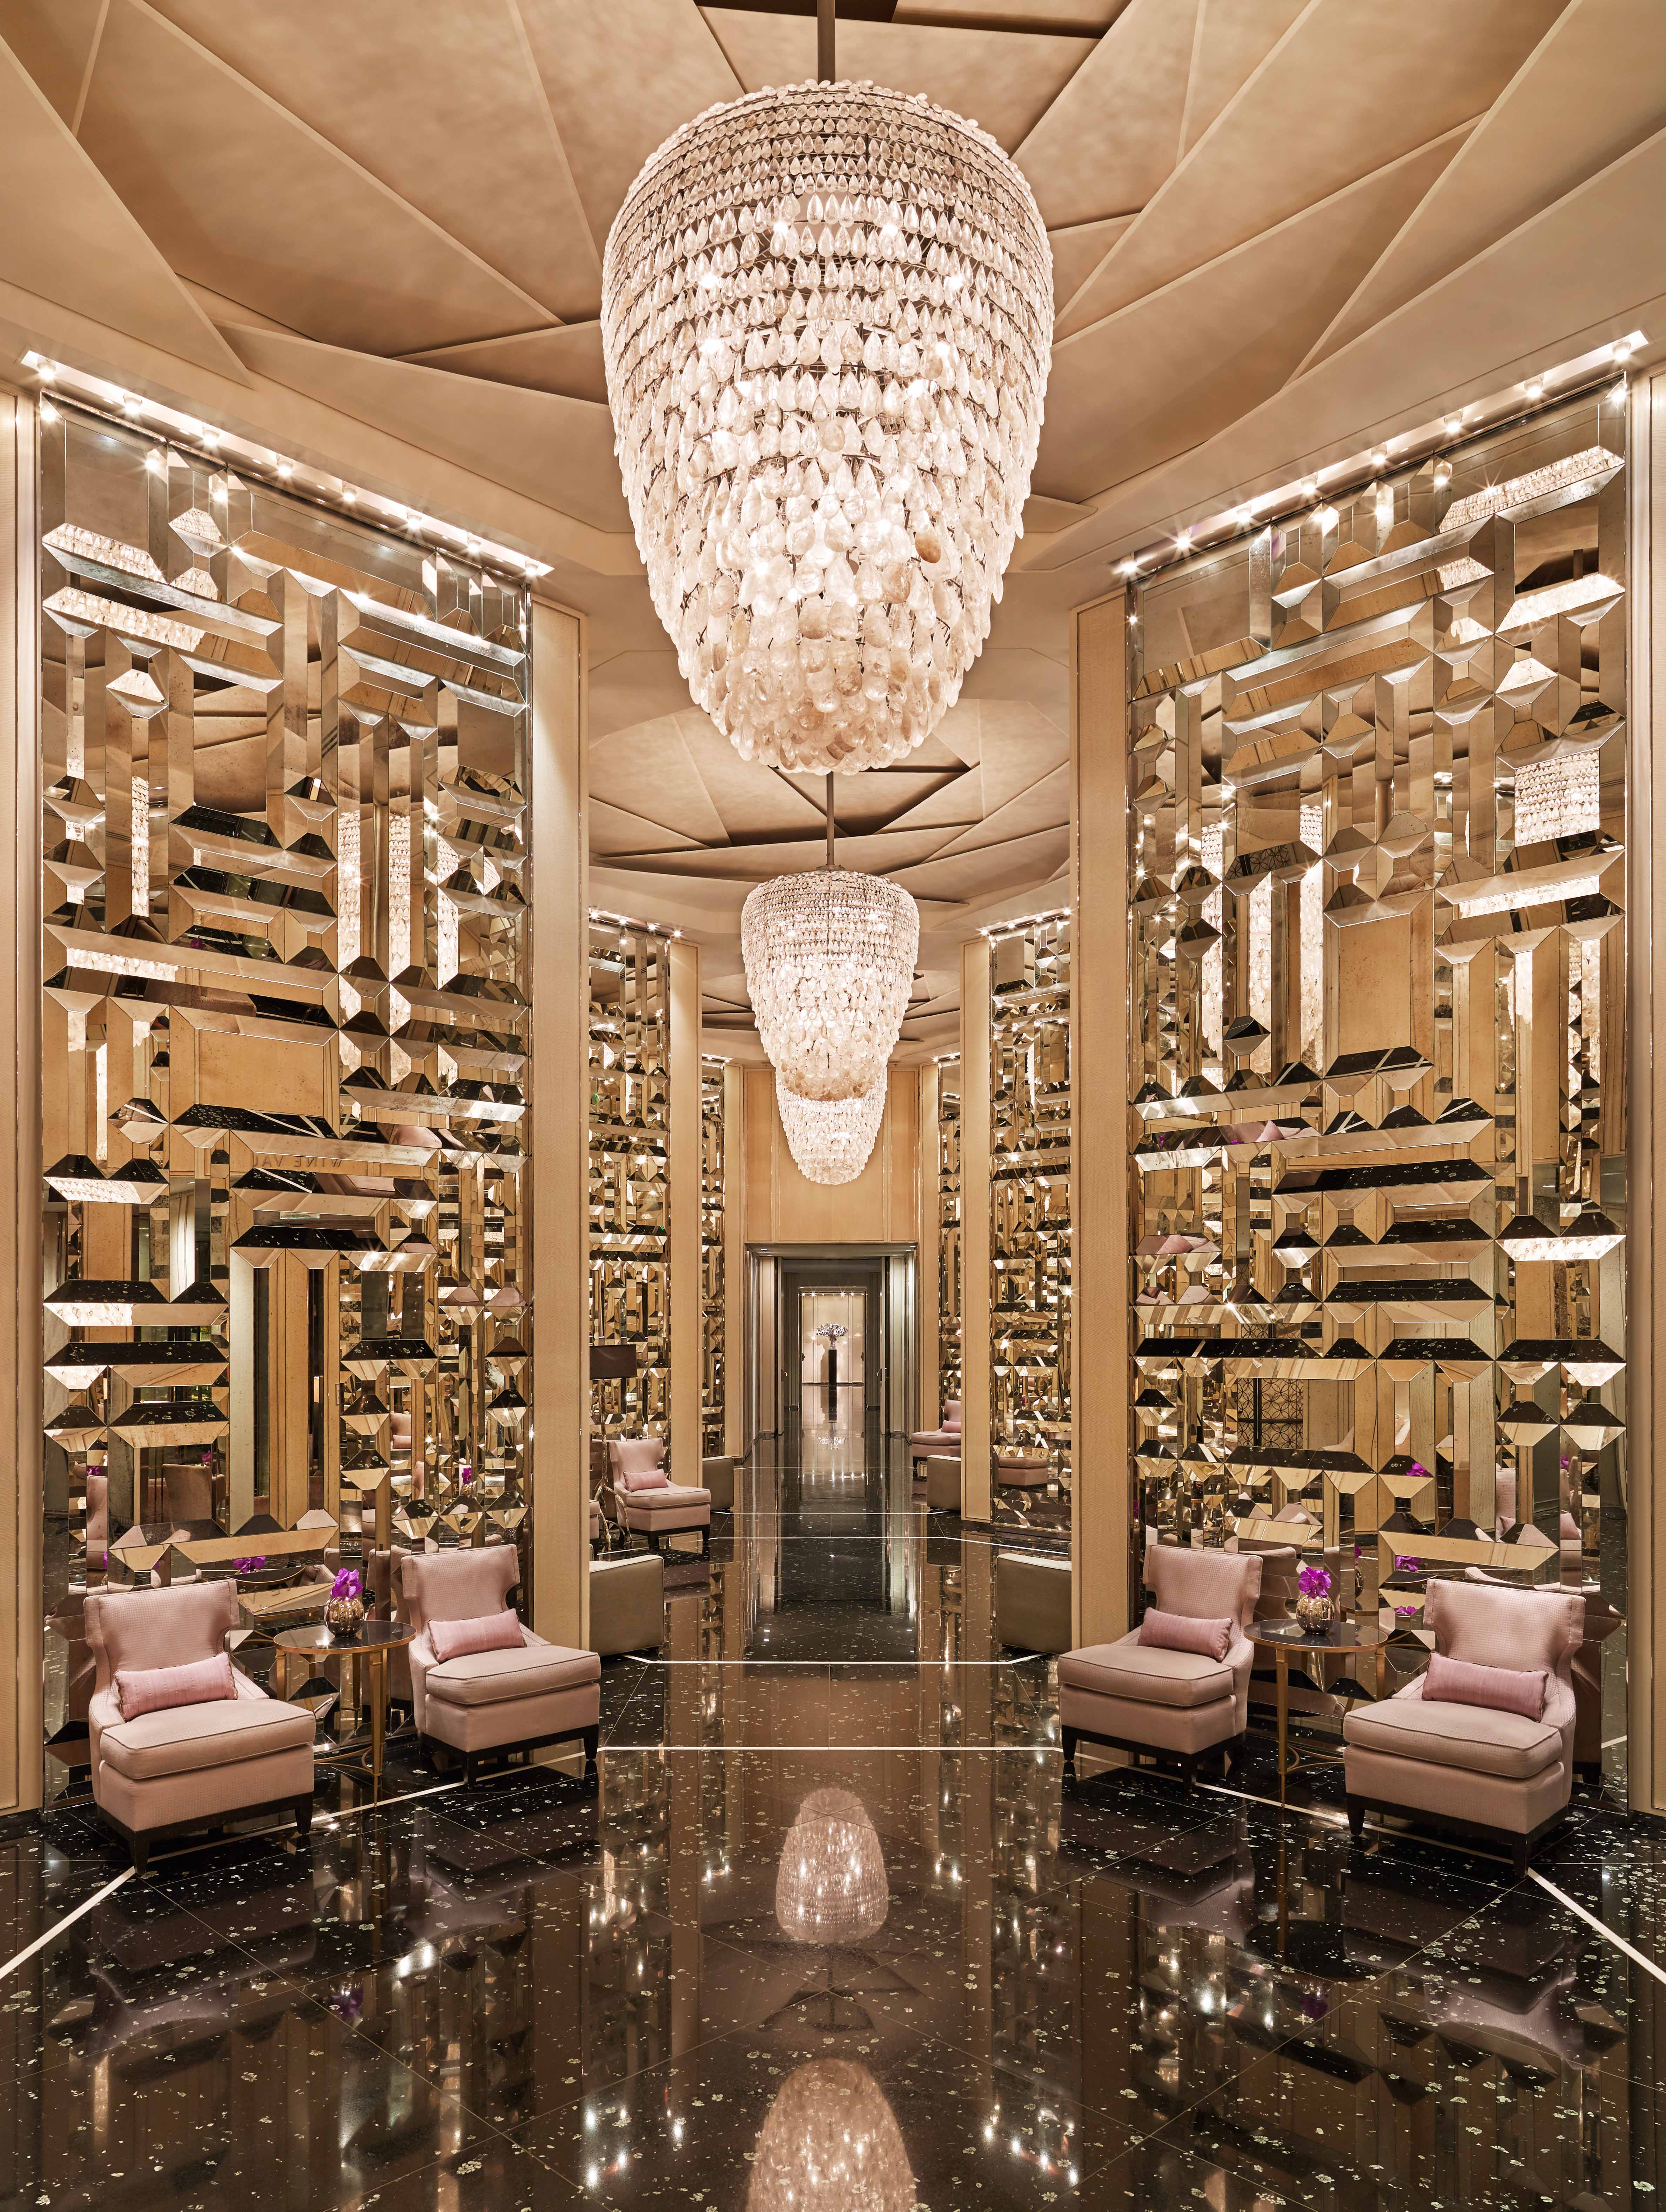 Photo of the lobby of the St. Regis Bal Harbour Florida.